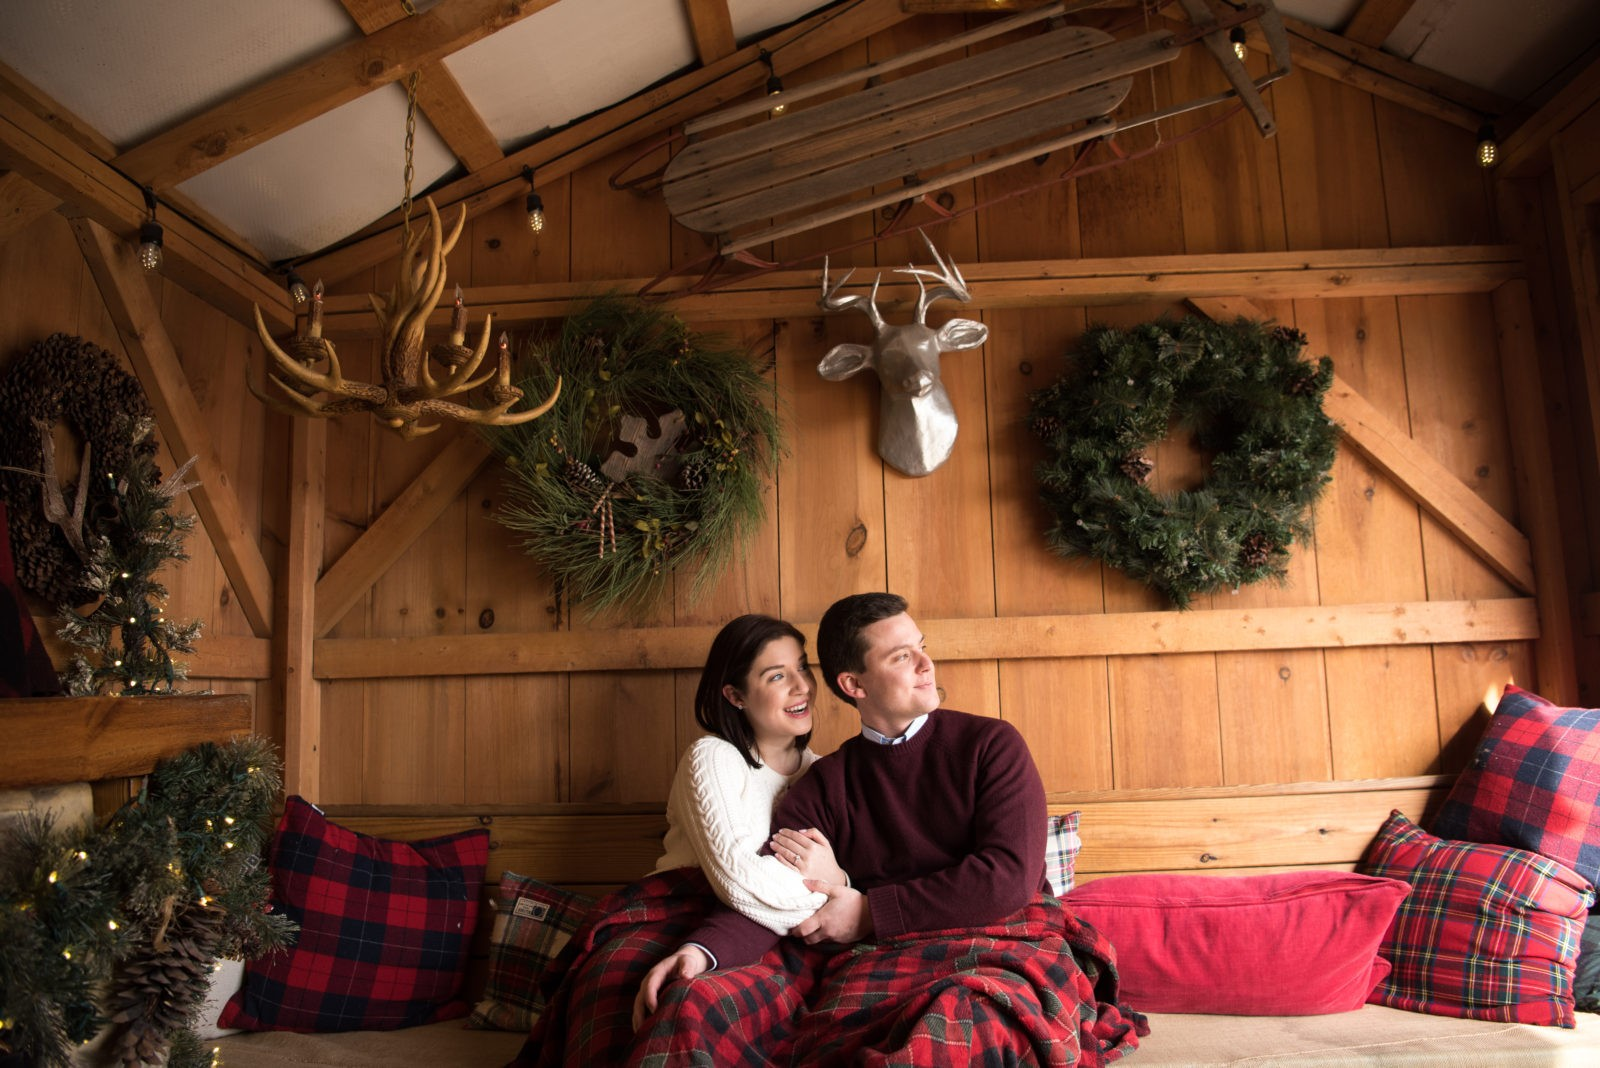 couple sitting on couch in wood cabin